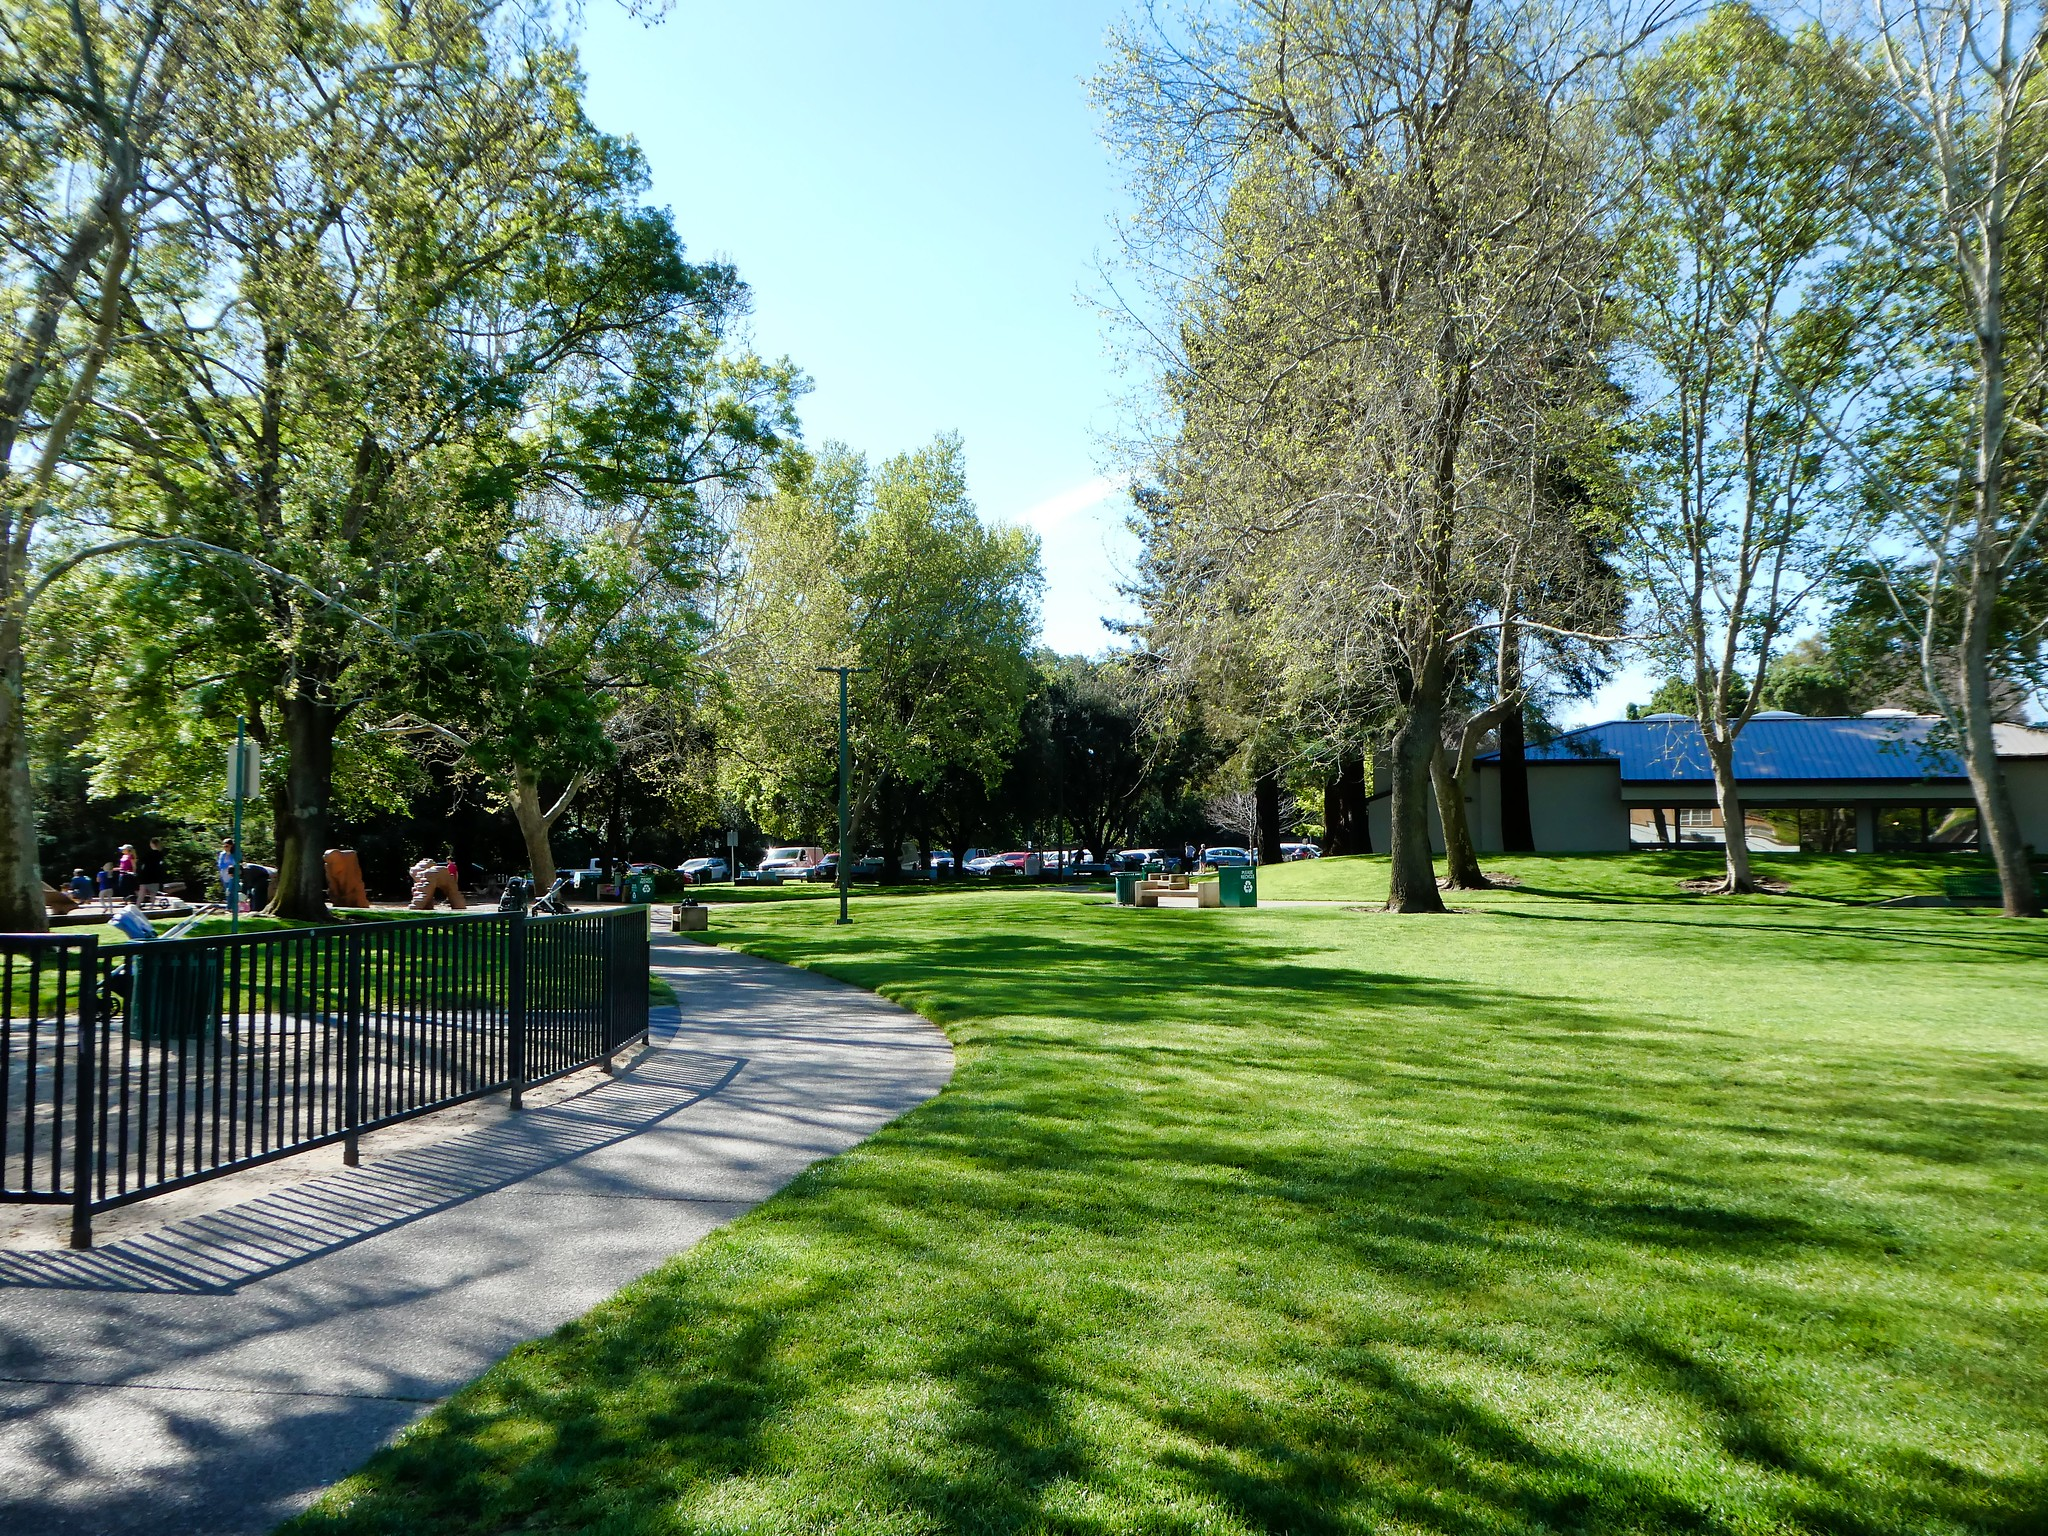 2019-04-13 - Outdoor Photography - Nature - Civic Park, Walnut Creek